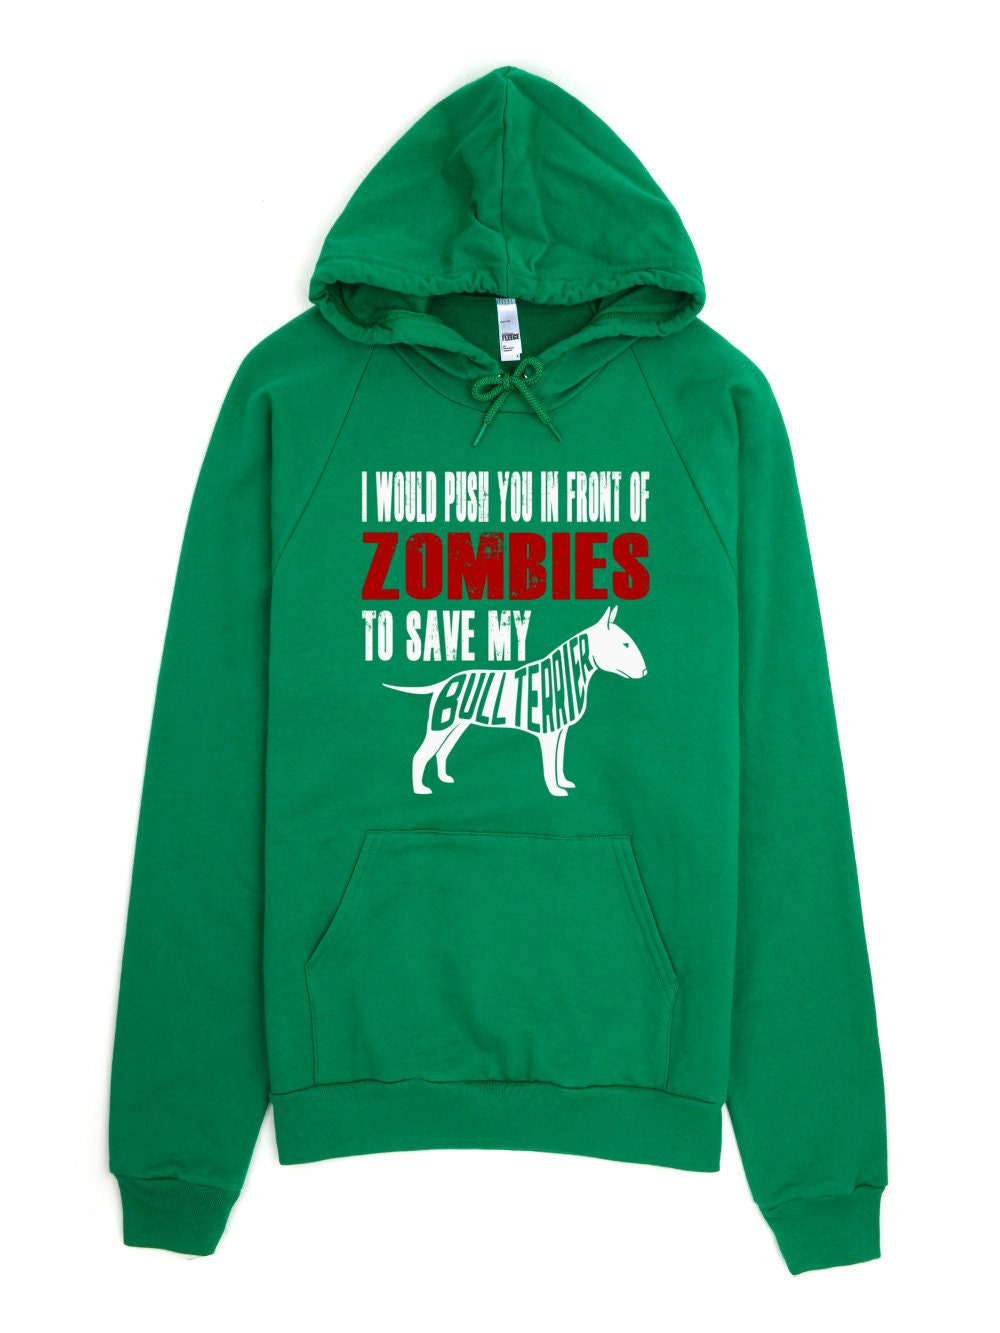 Bull Terrier Sweatshirt - I Would Push You In Front Of Zombies To Save My Bull Terrier Hoodie